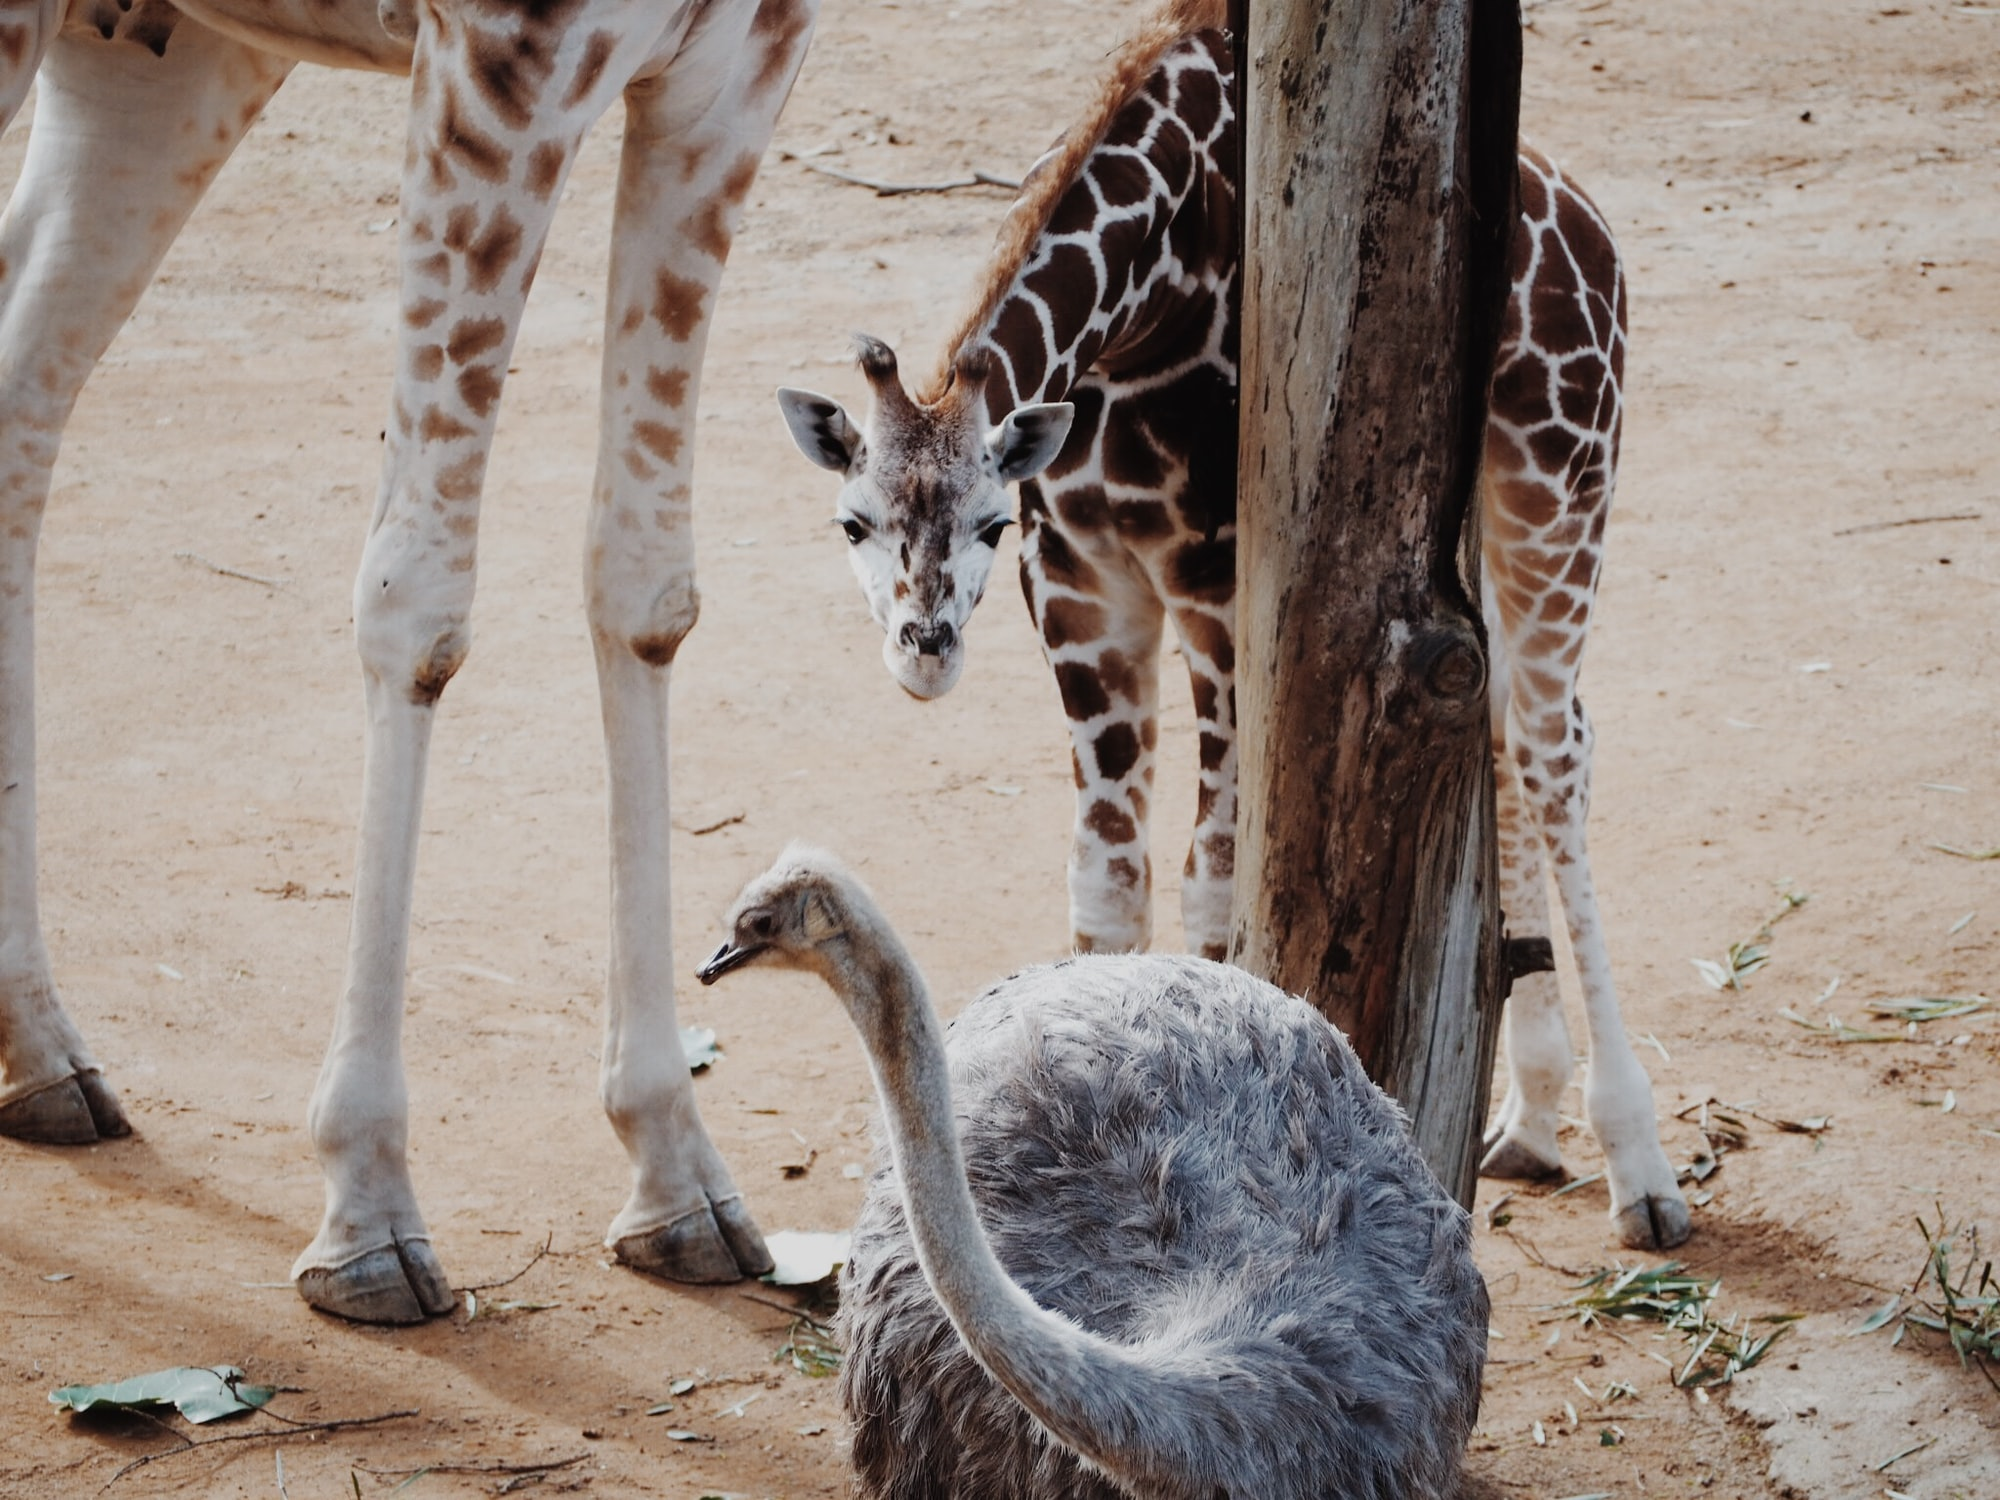 The Ostrich and the Giraffe